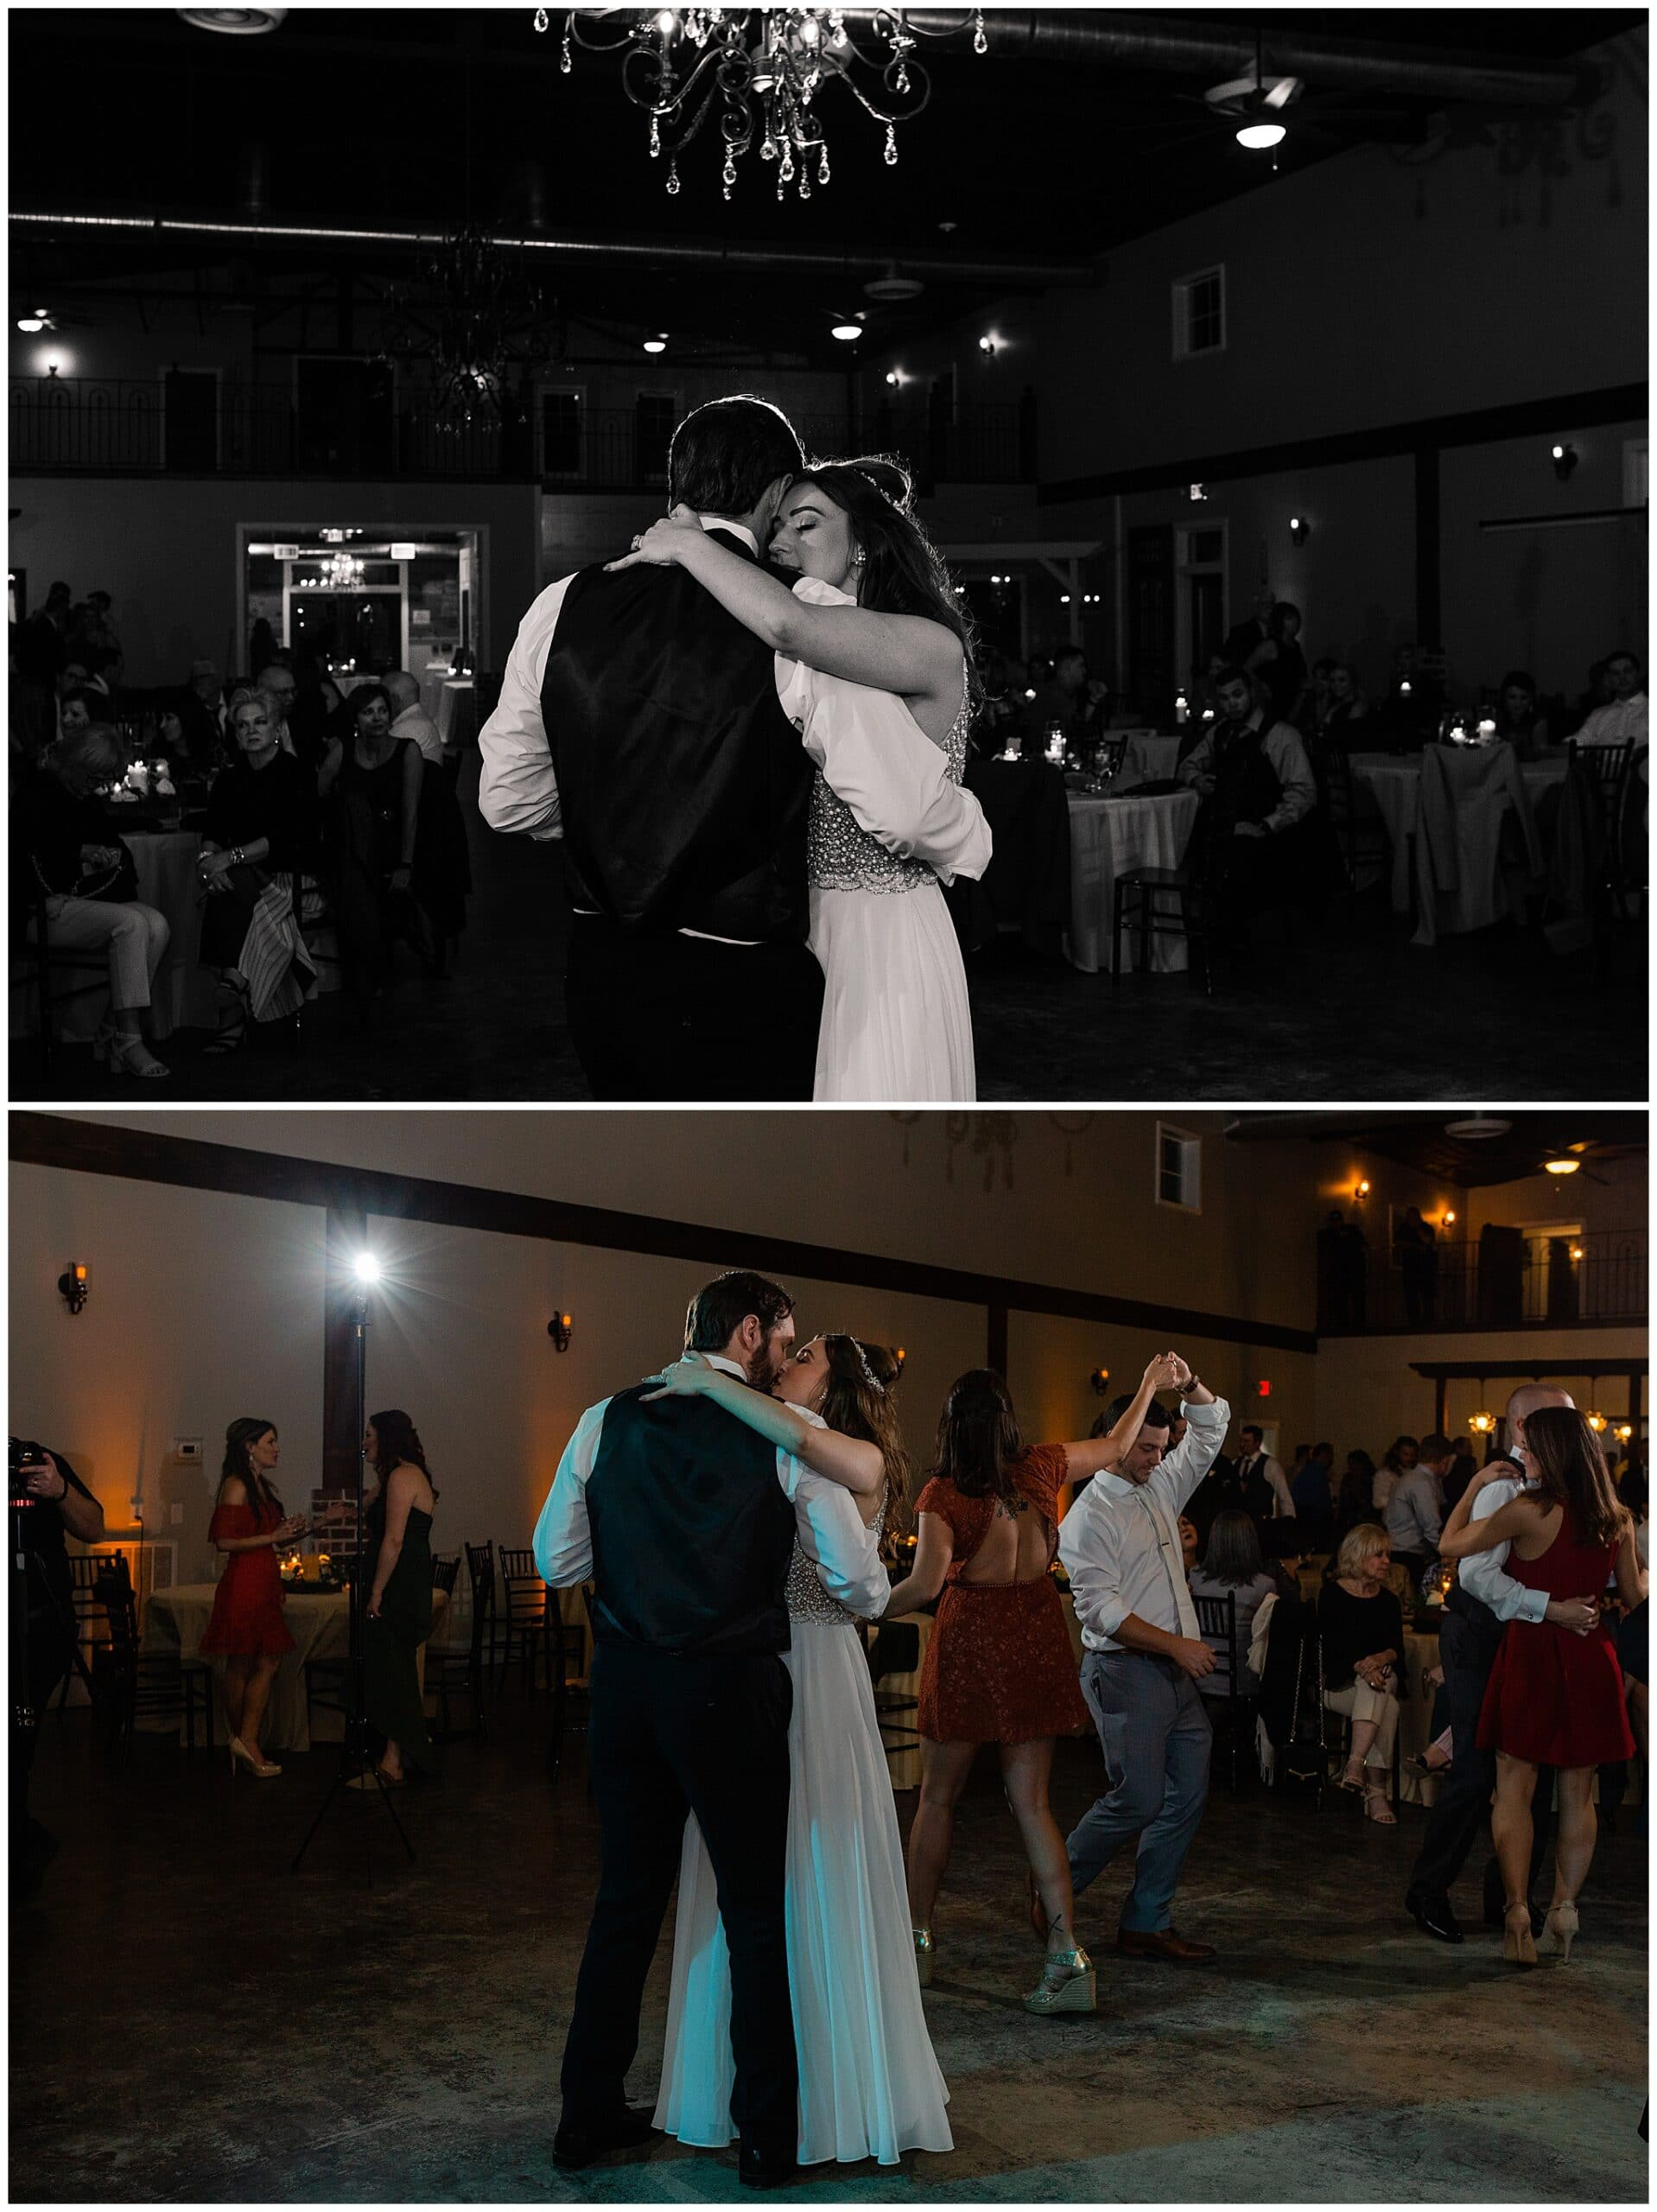 dancing at reception at Hochzeit Hall captured by Swish and Click Photography